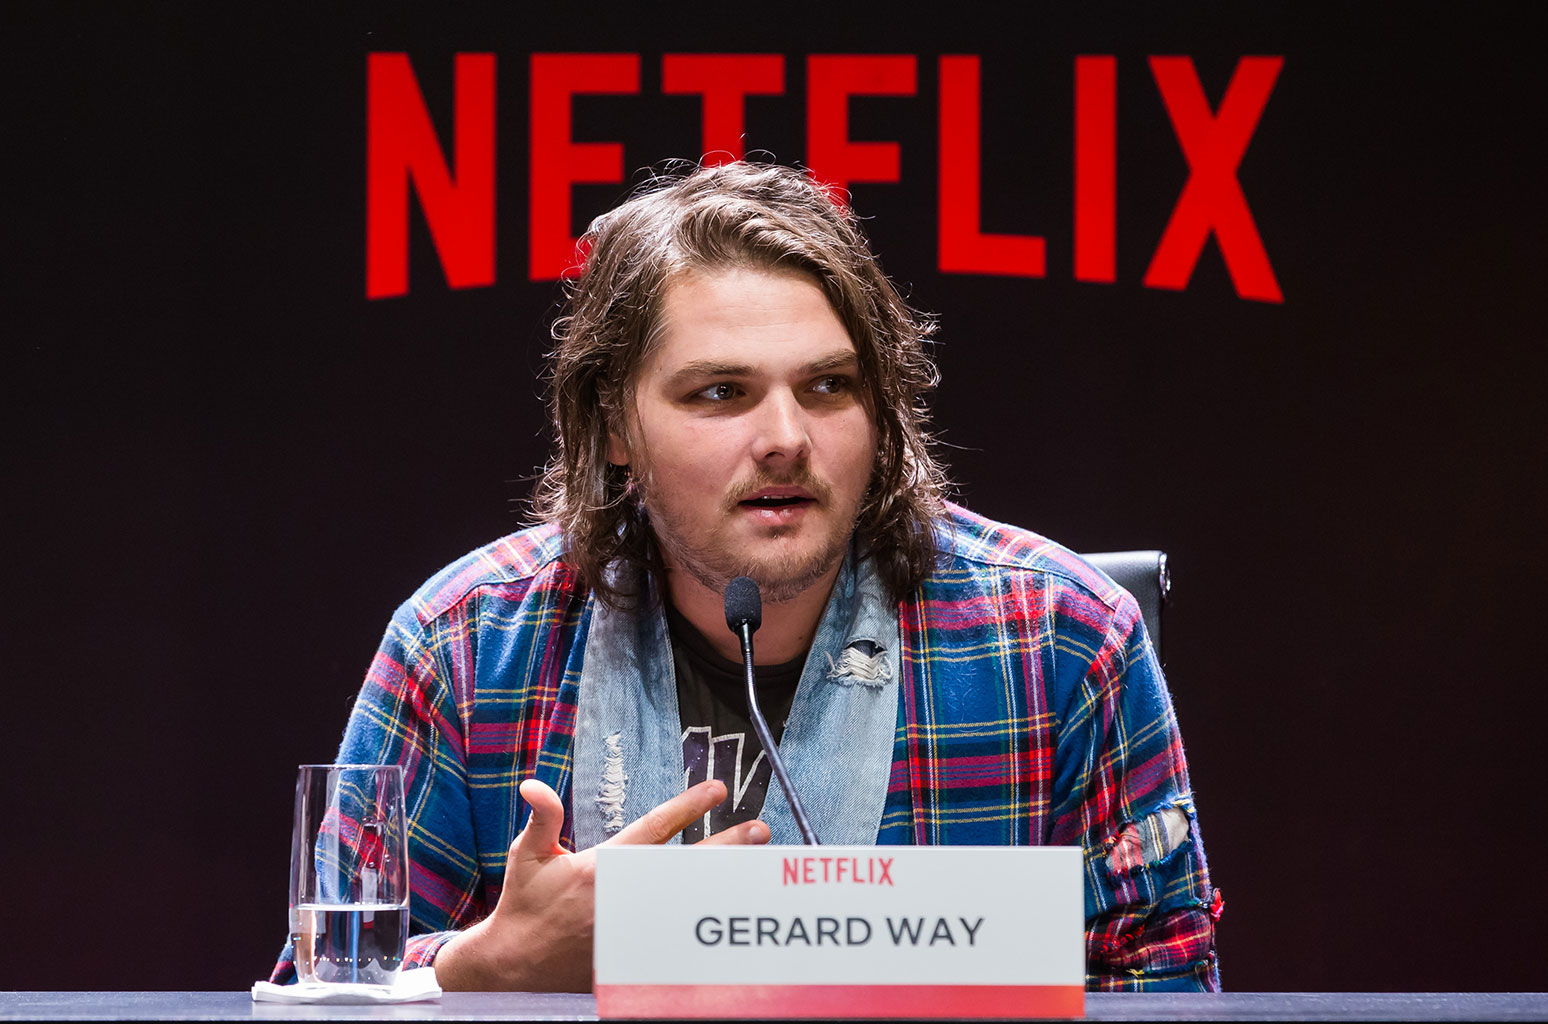 The Gerard Way you once knew may look... a little different now.